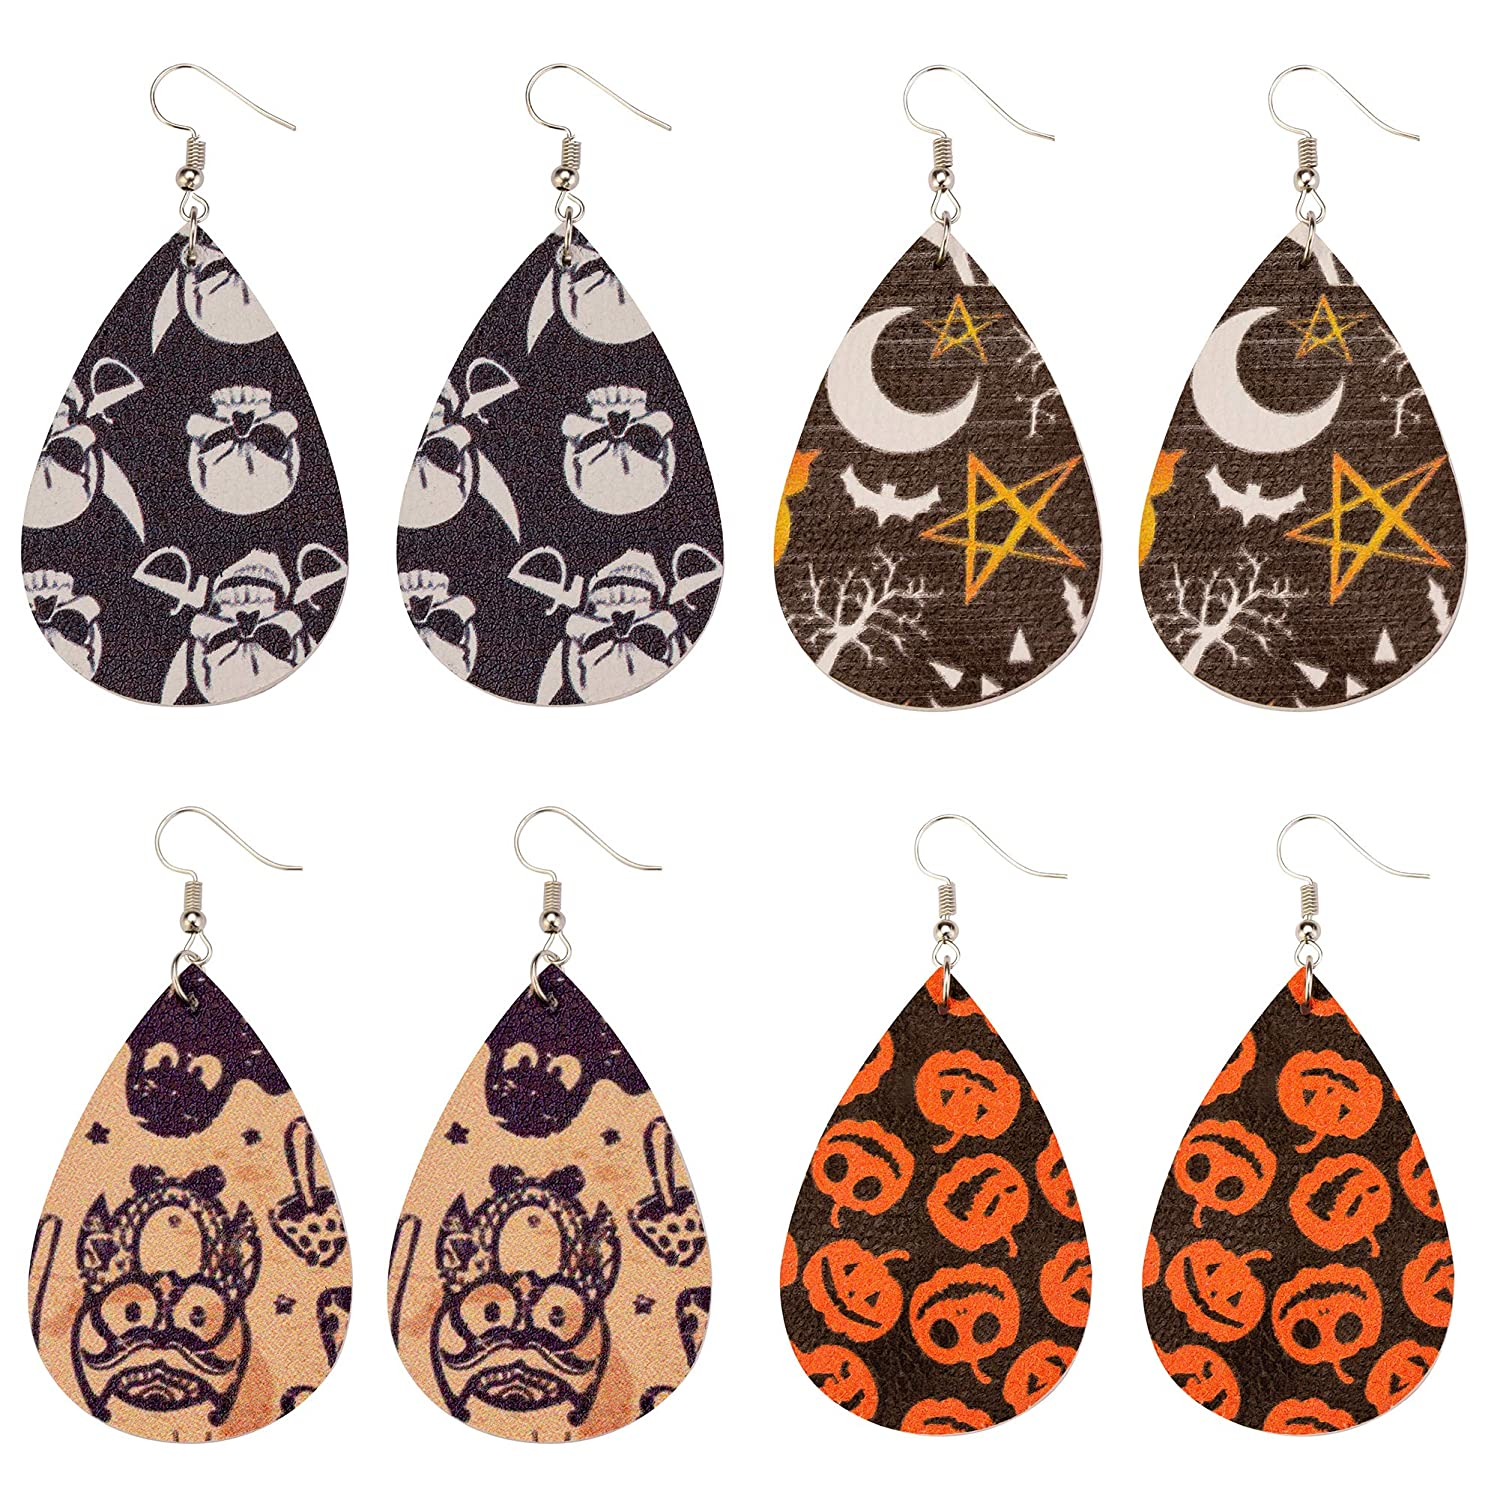 Halloween Earrings Pumpkin Theme Leather Earrings Teardrop Dangle Handmade Diy Unique Design 4 pair EXWEUP